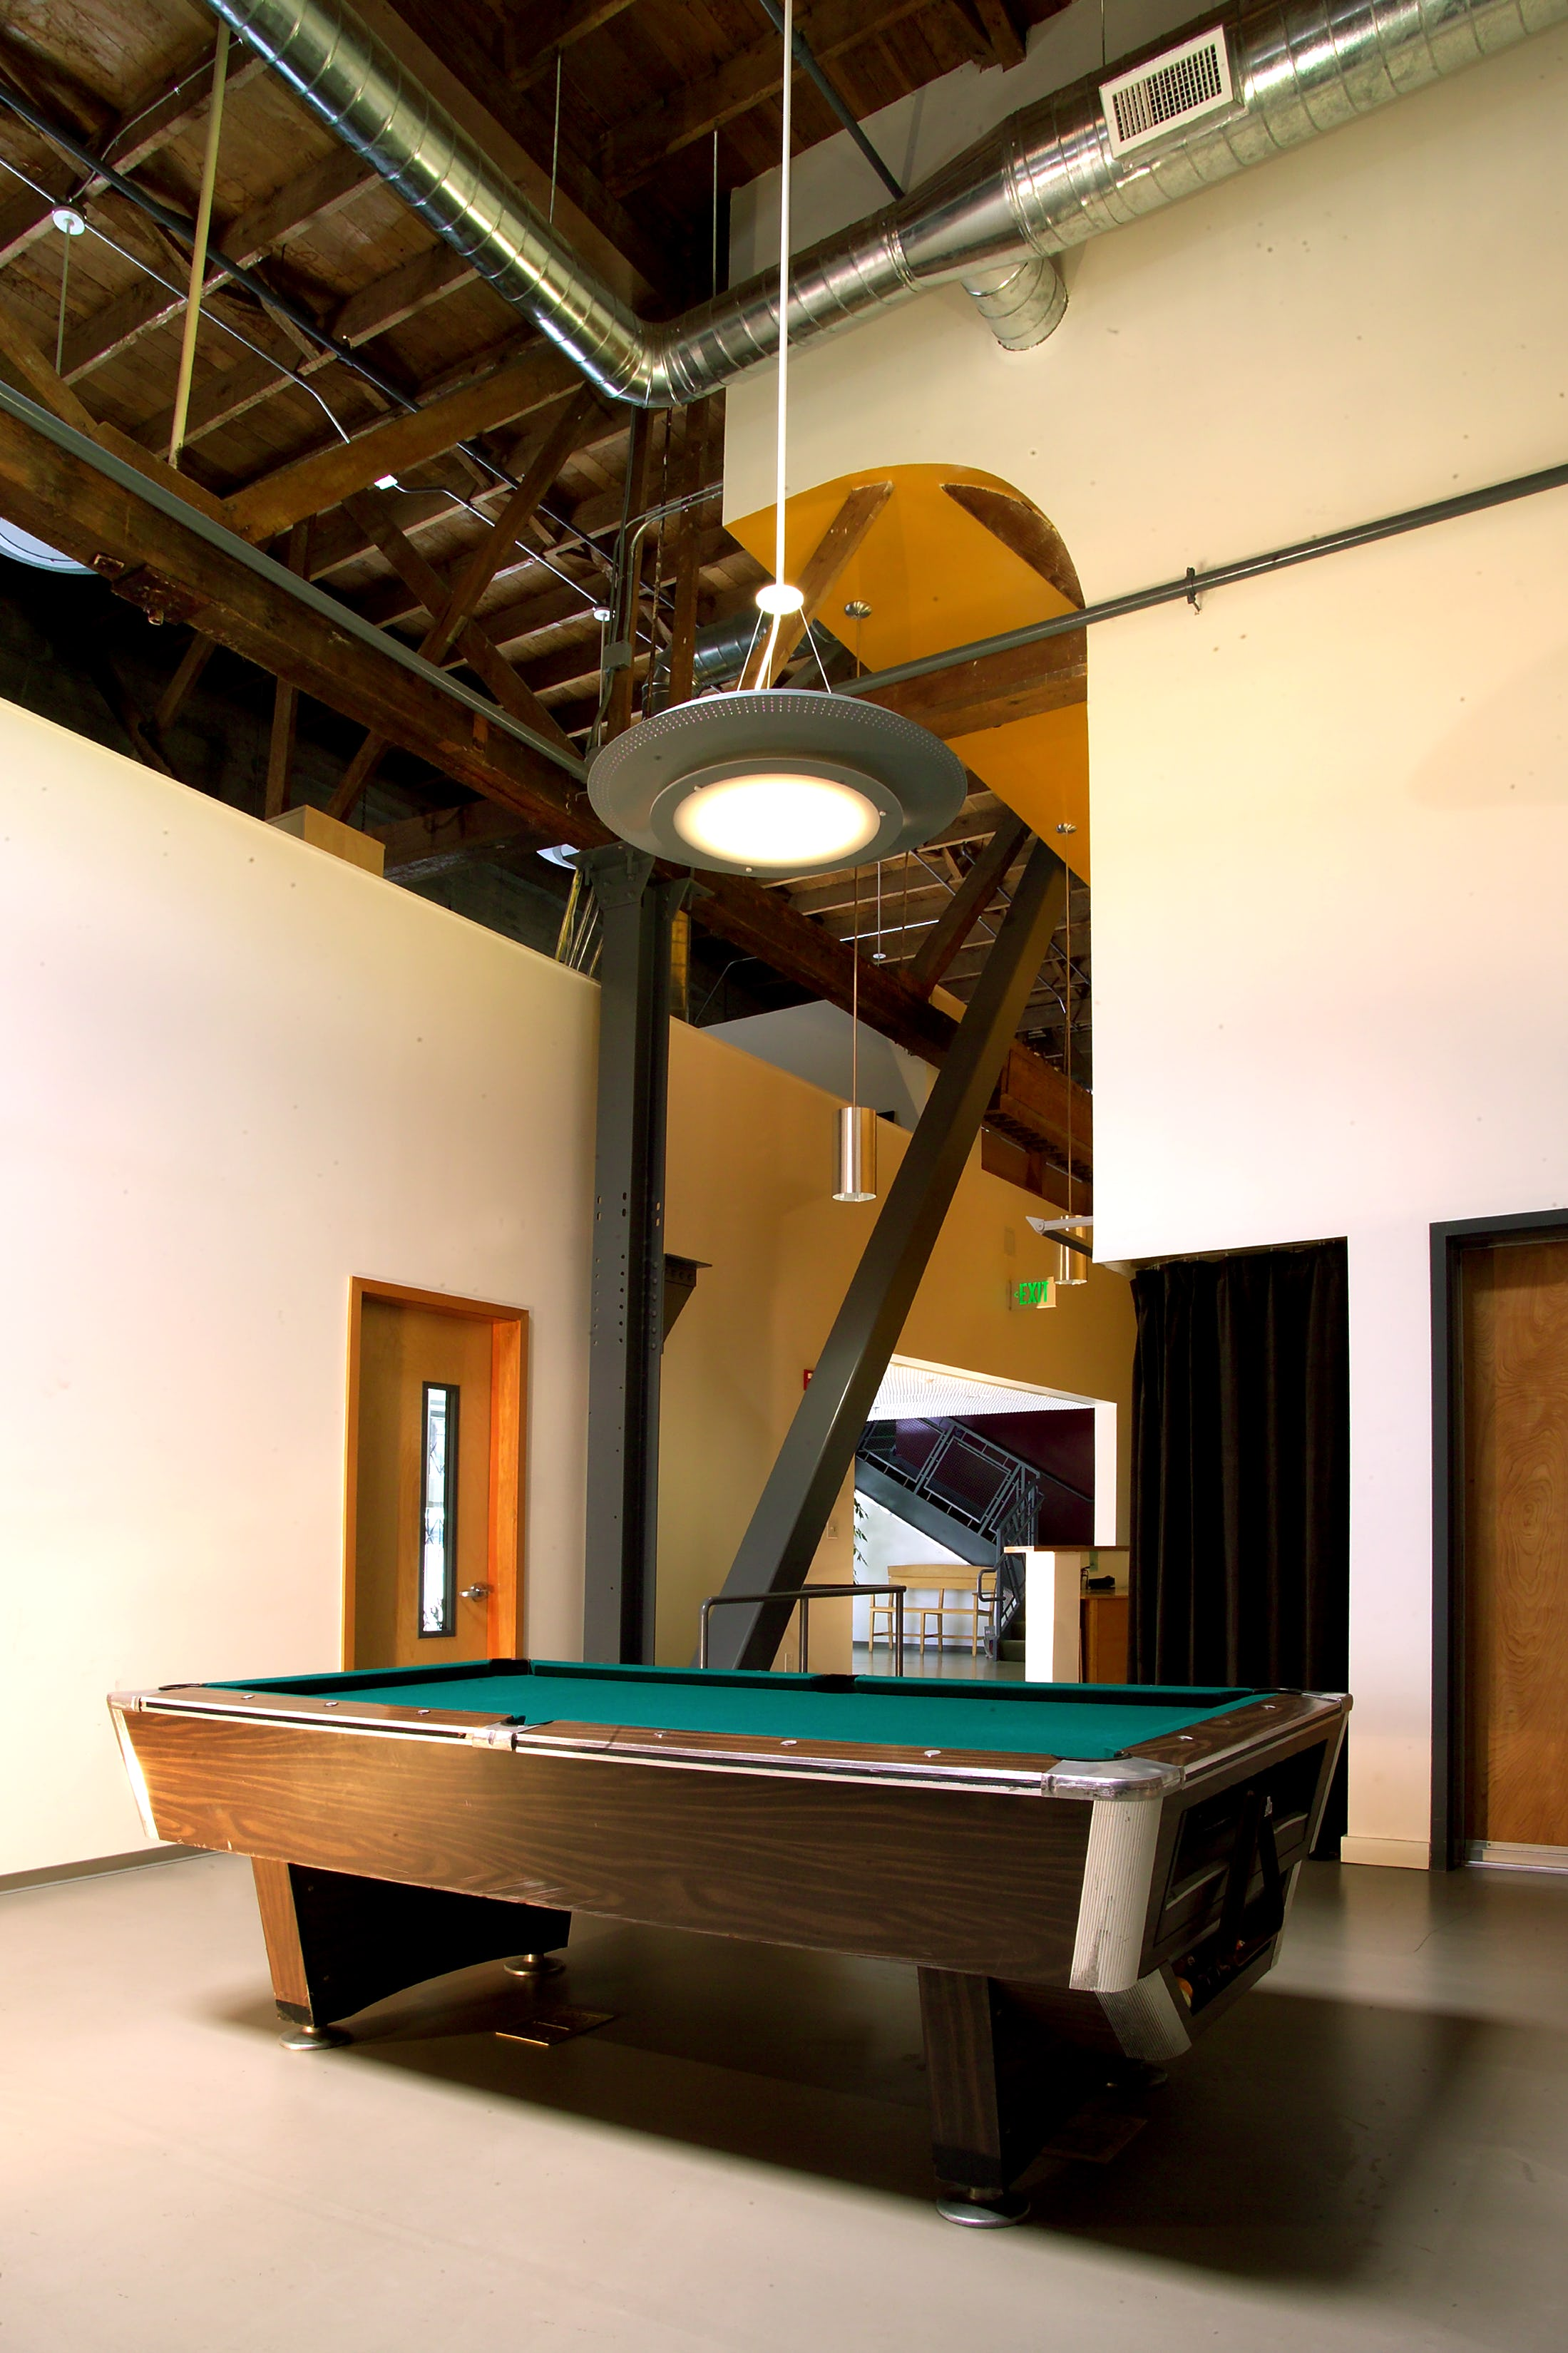 Oscar pooltable